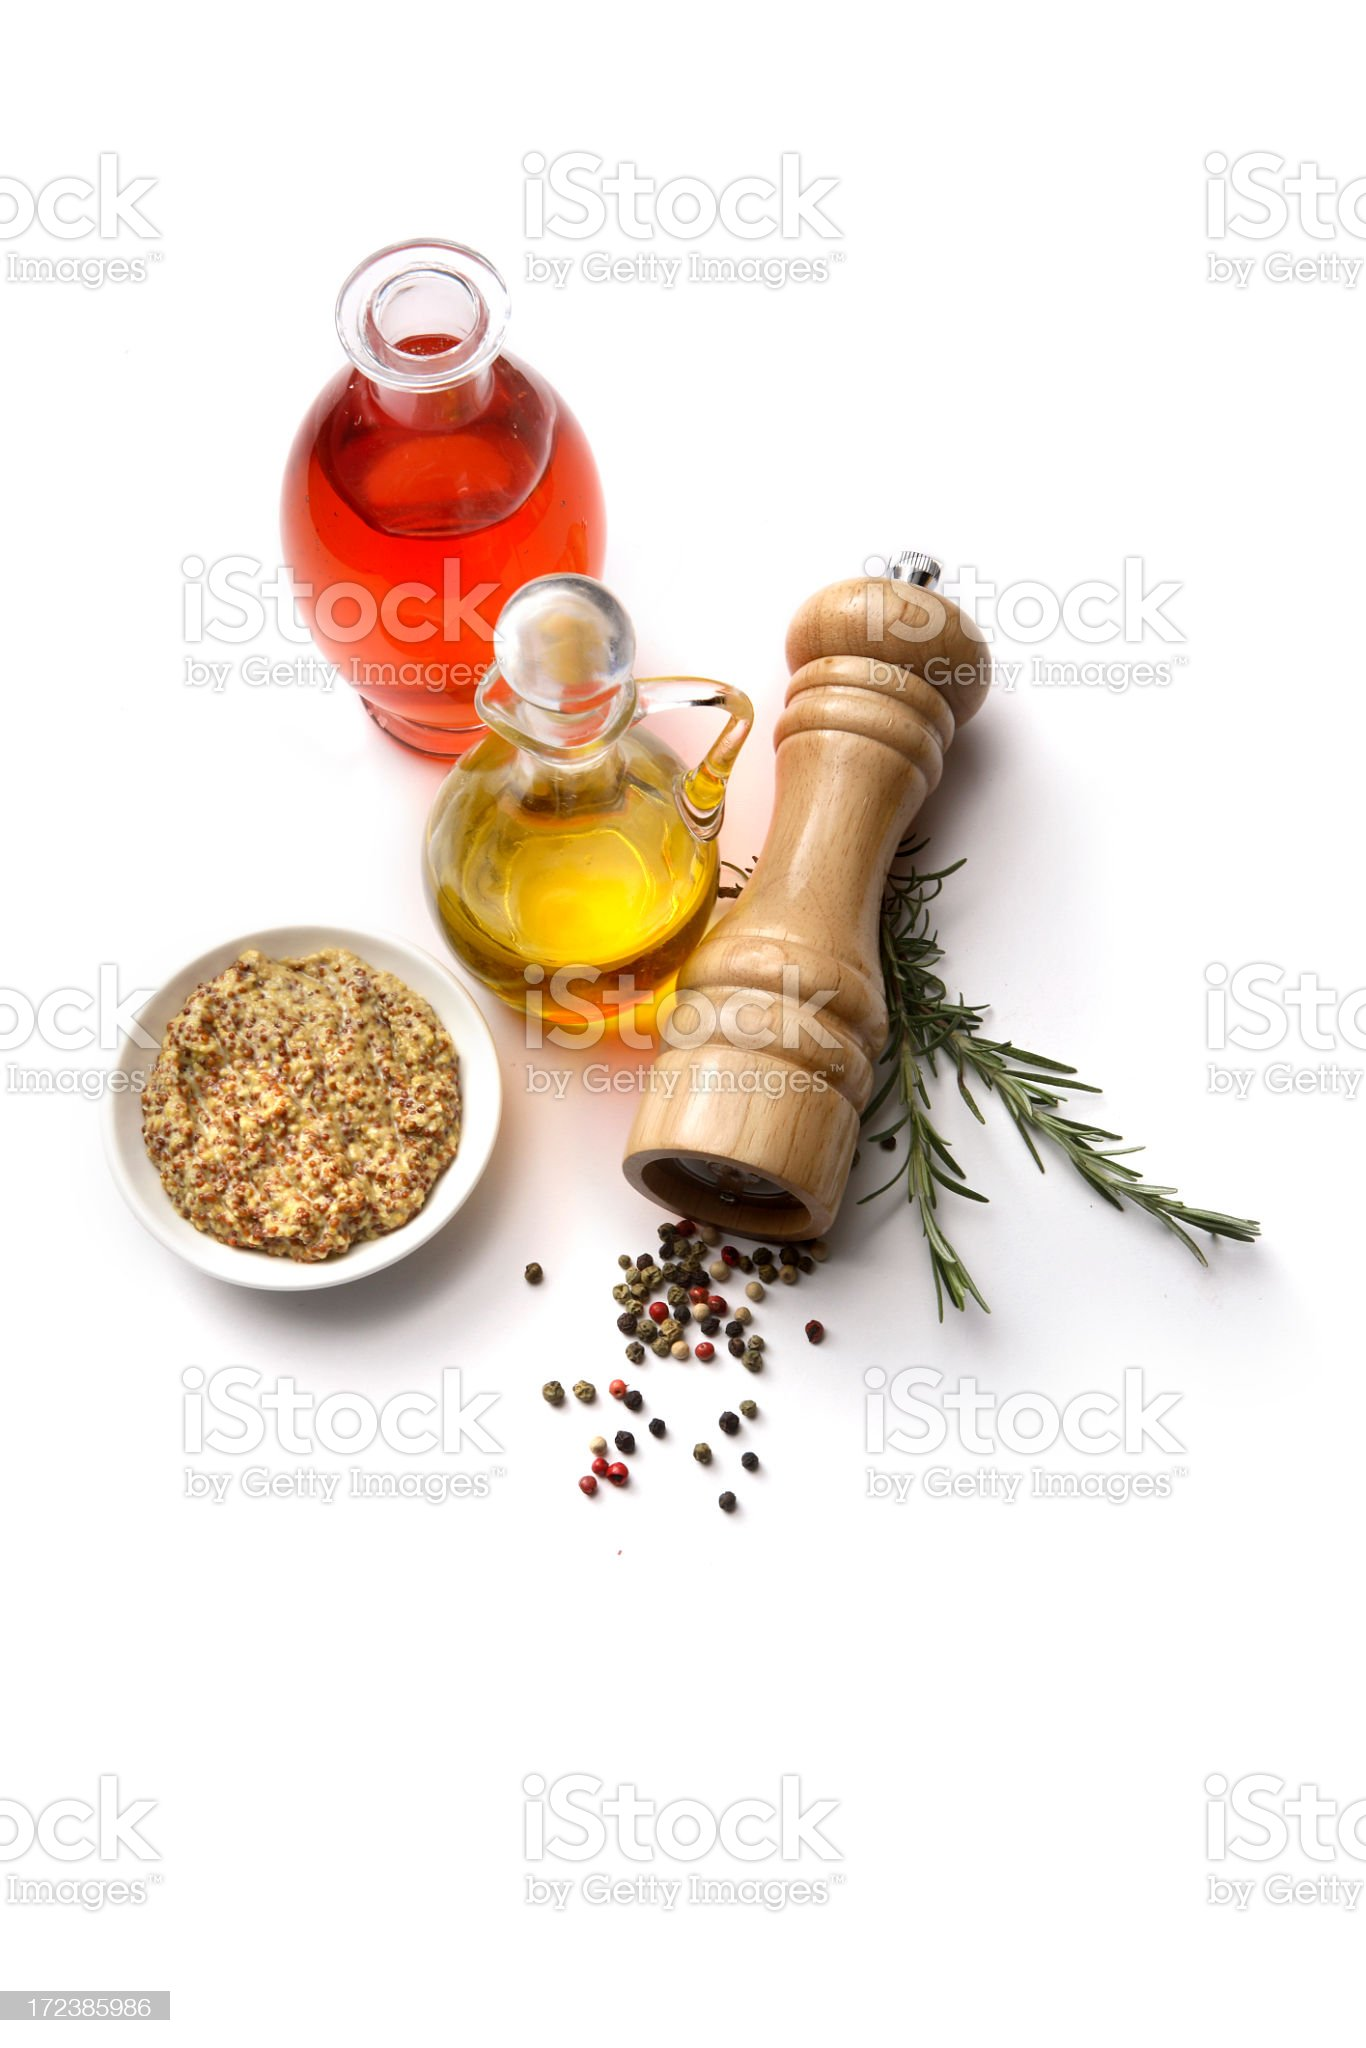 Flavouring: Vinaigrette Dressing royalty-free stock photo